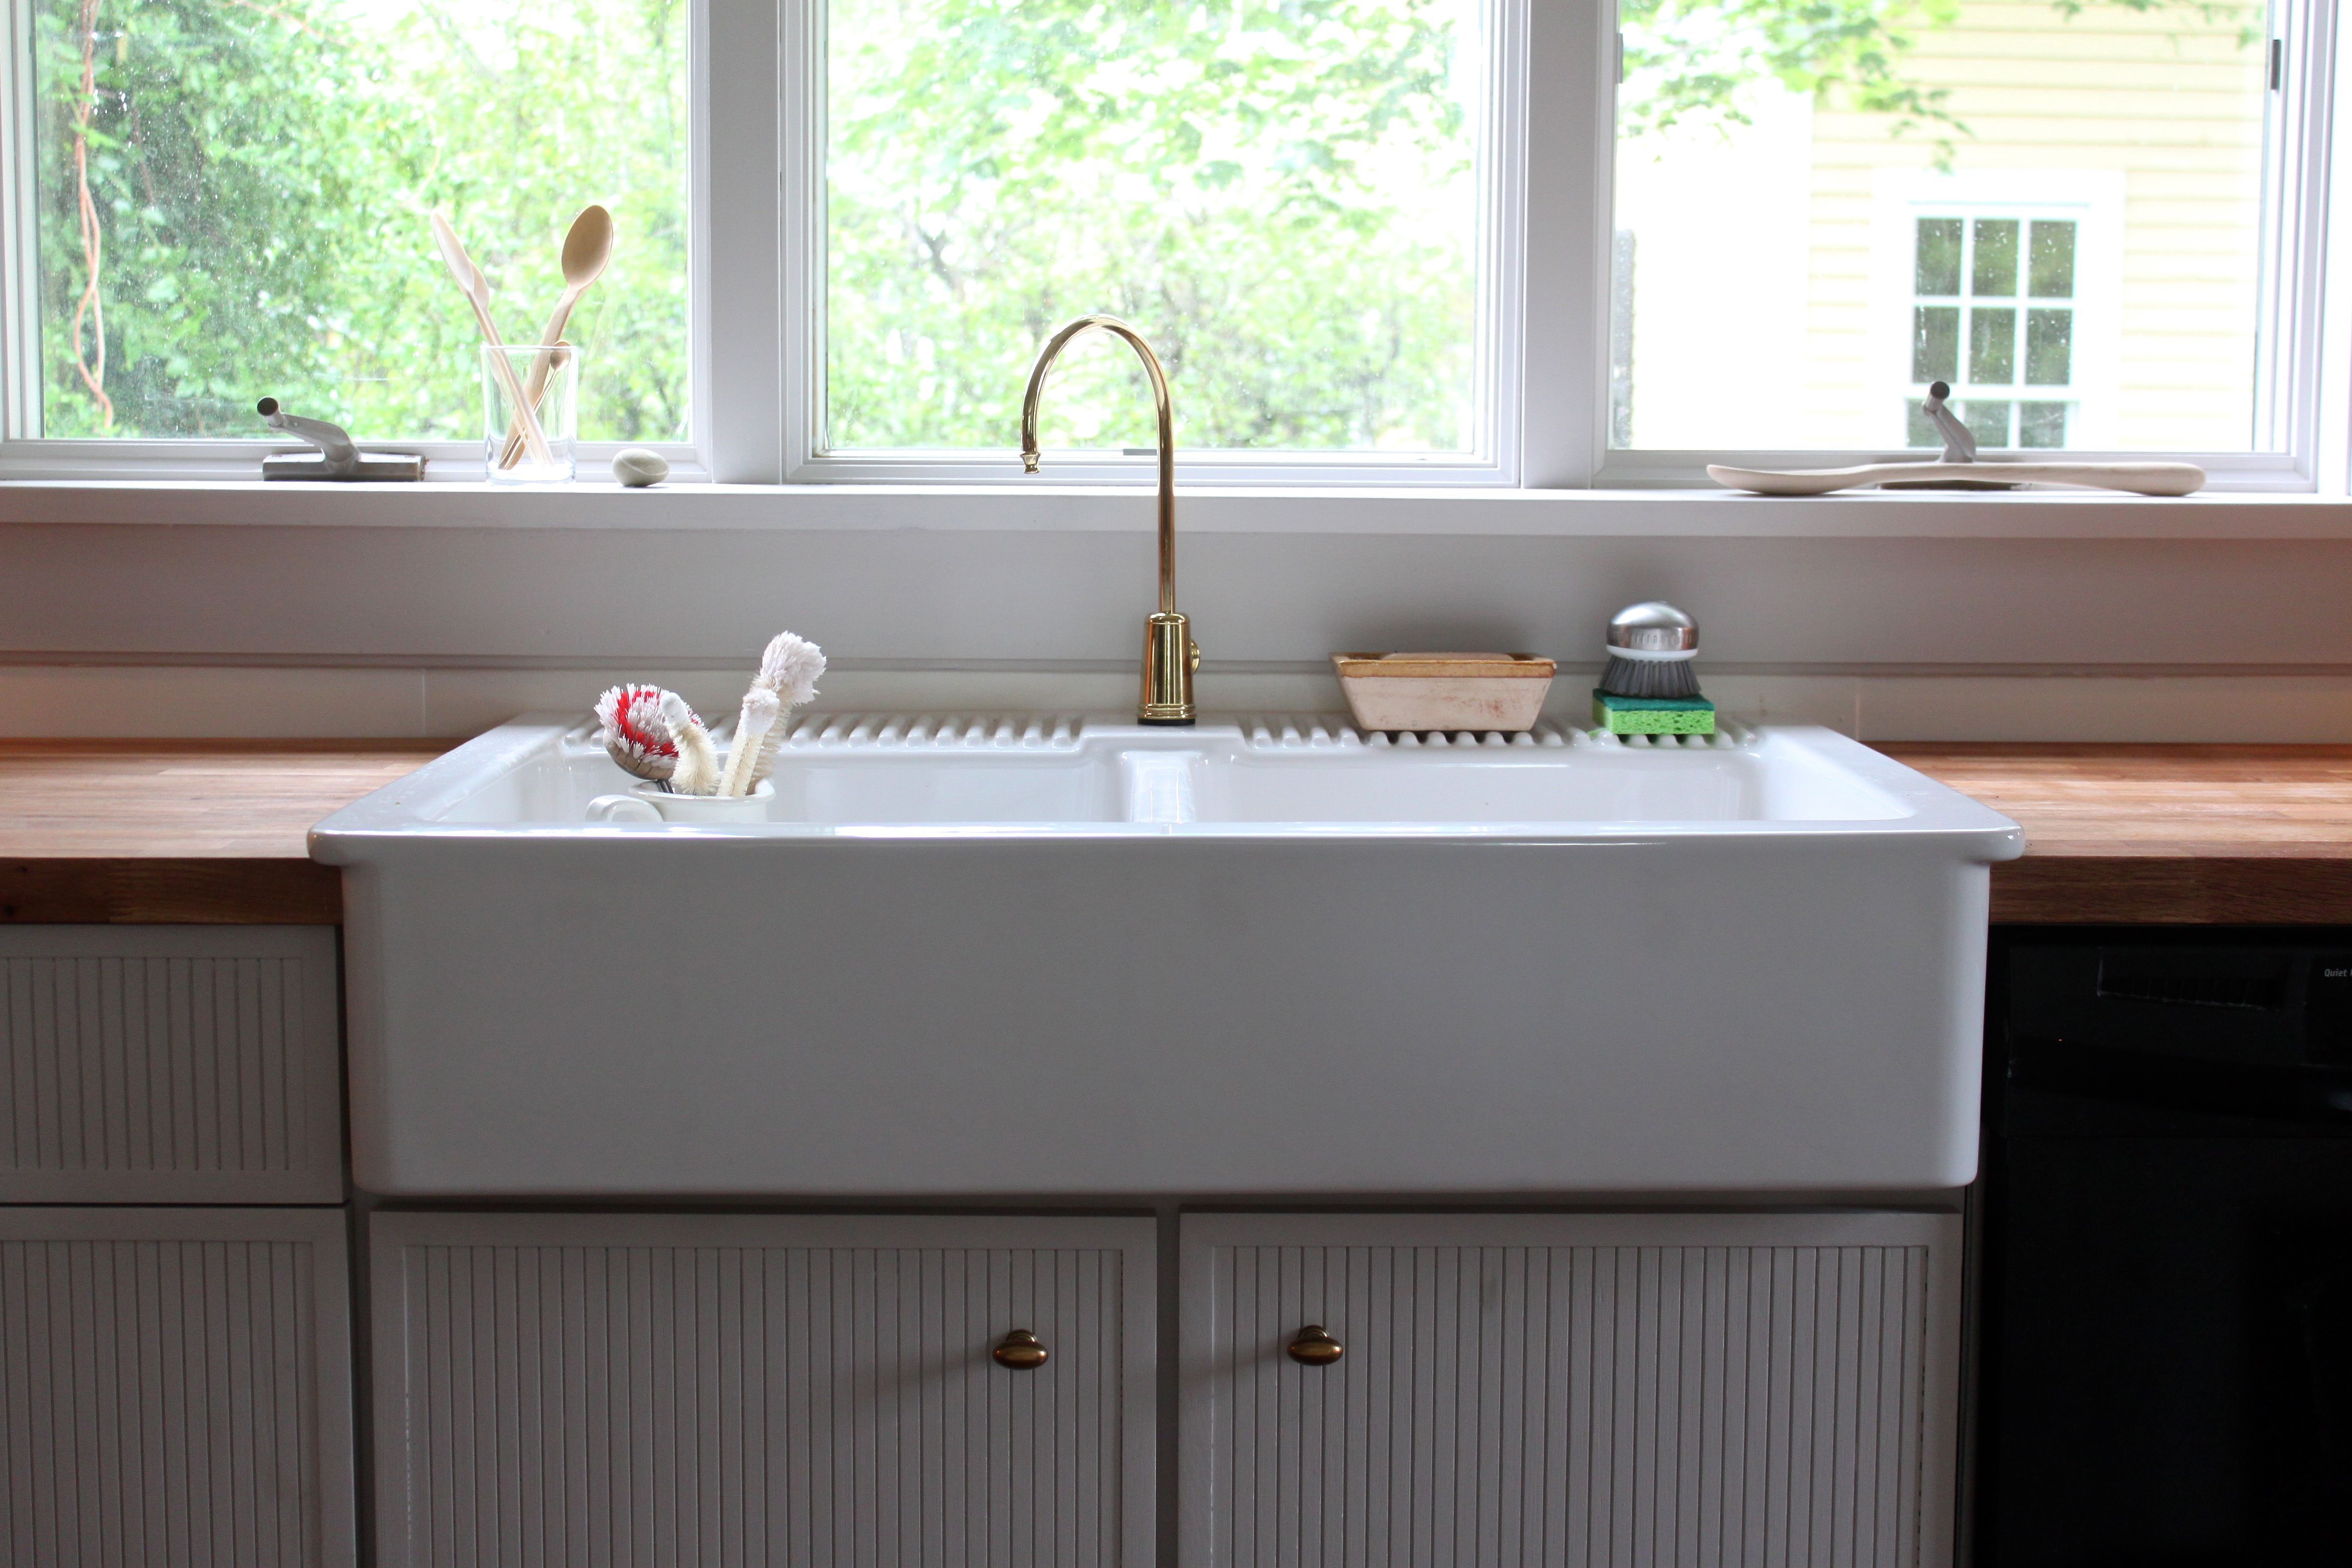 With soapstone counters and a different faucet... With